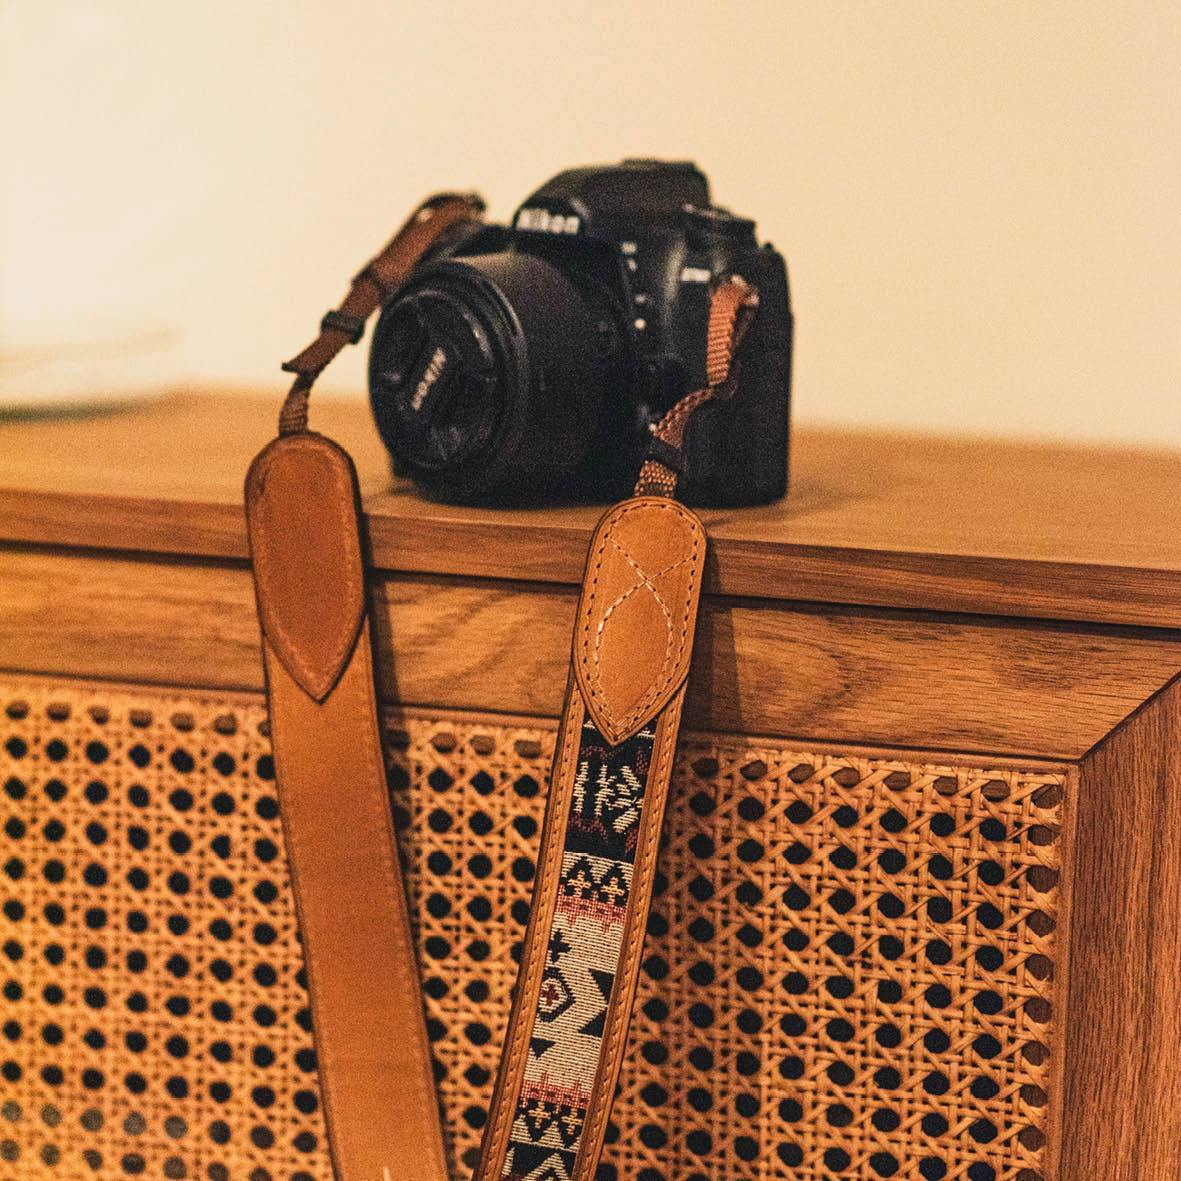 Camera straps - Hunch Clothes